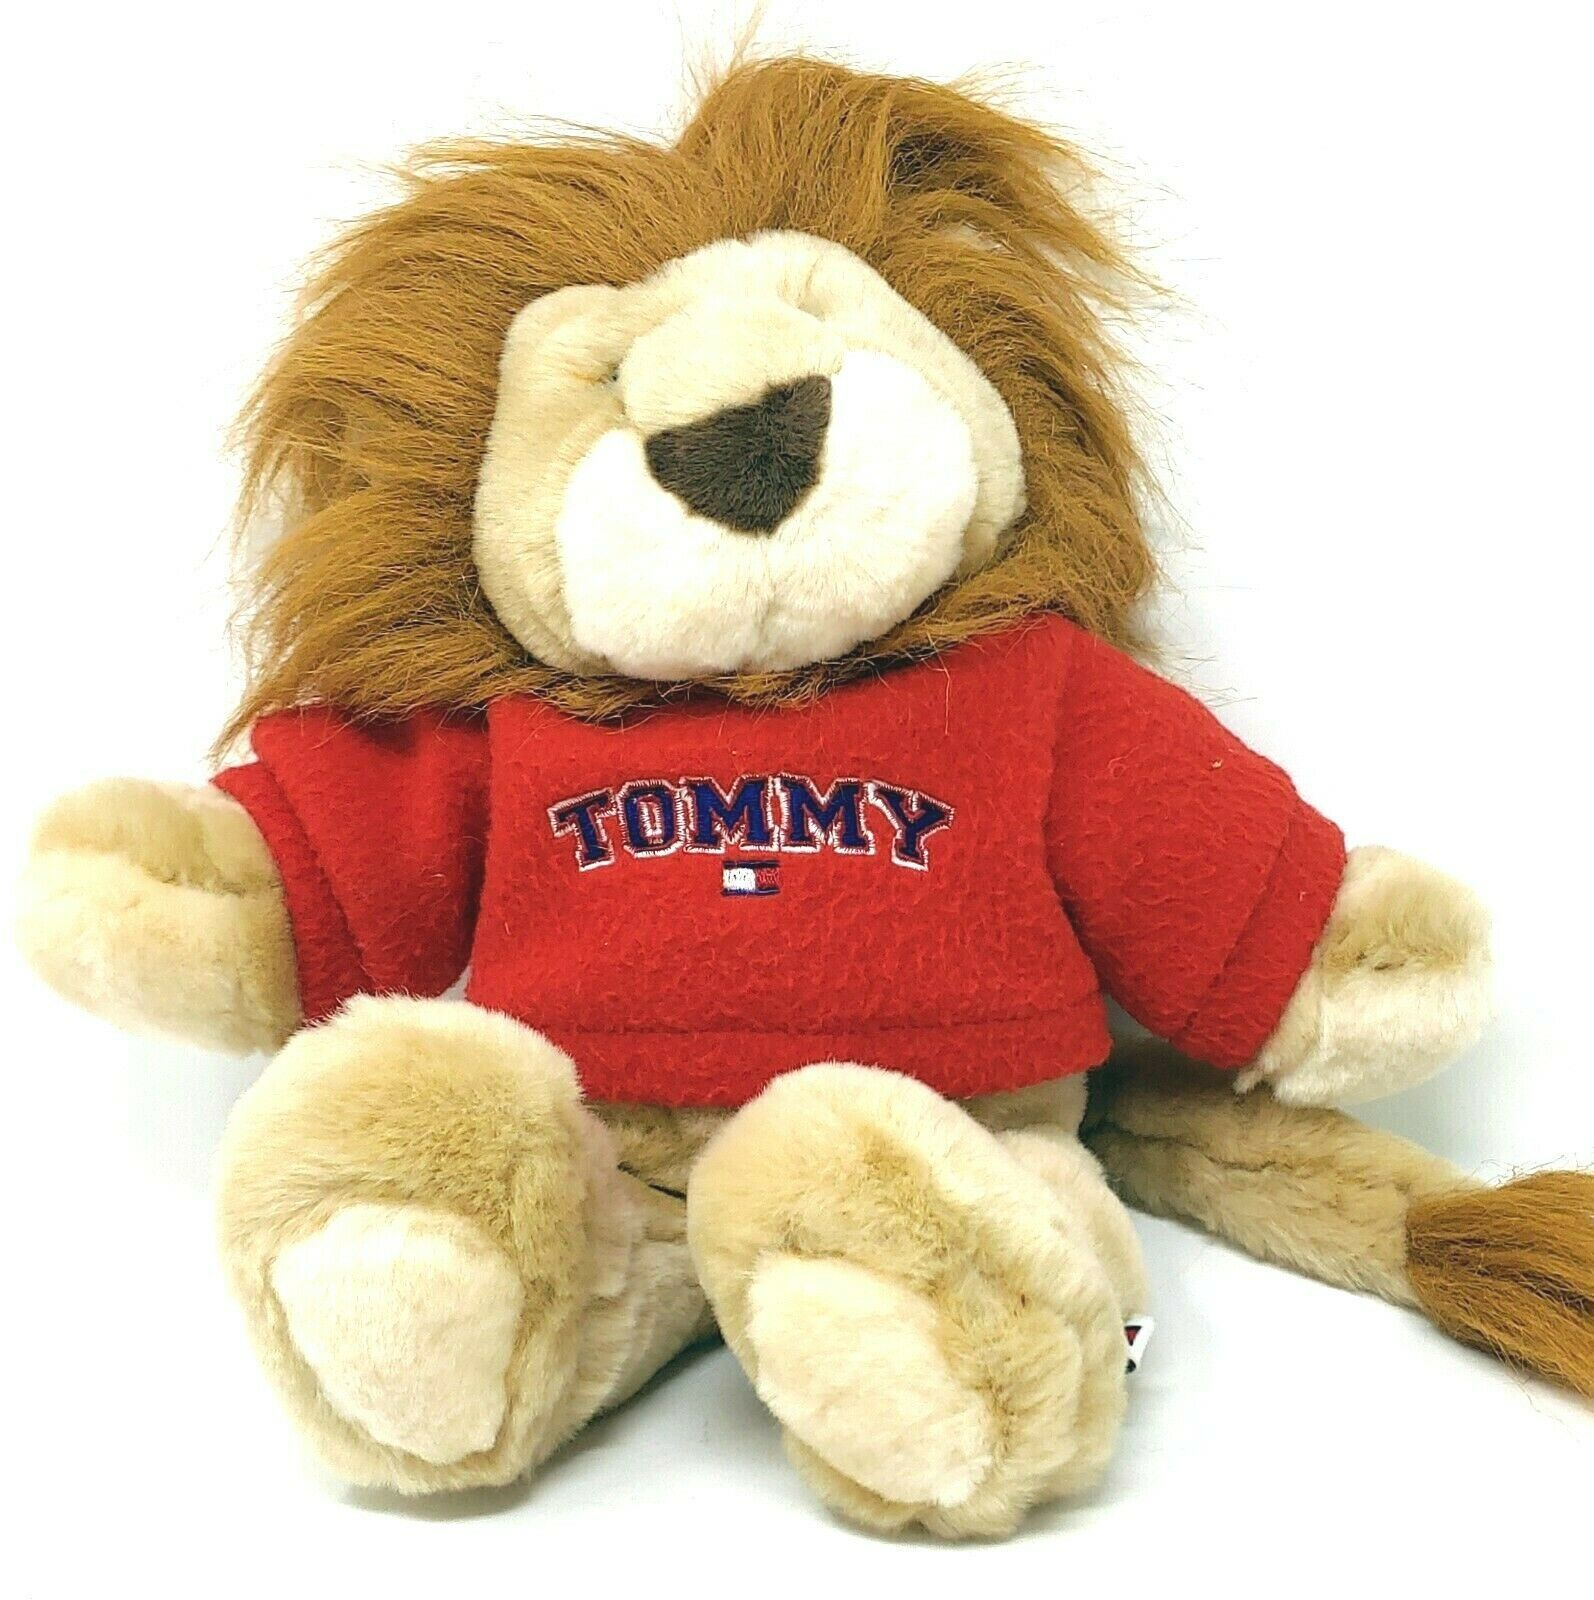 Tommy Hilfiger 11 Inch Plush Lion in Tommy Red Sweater by Commonwealth 2002 - $19.99